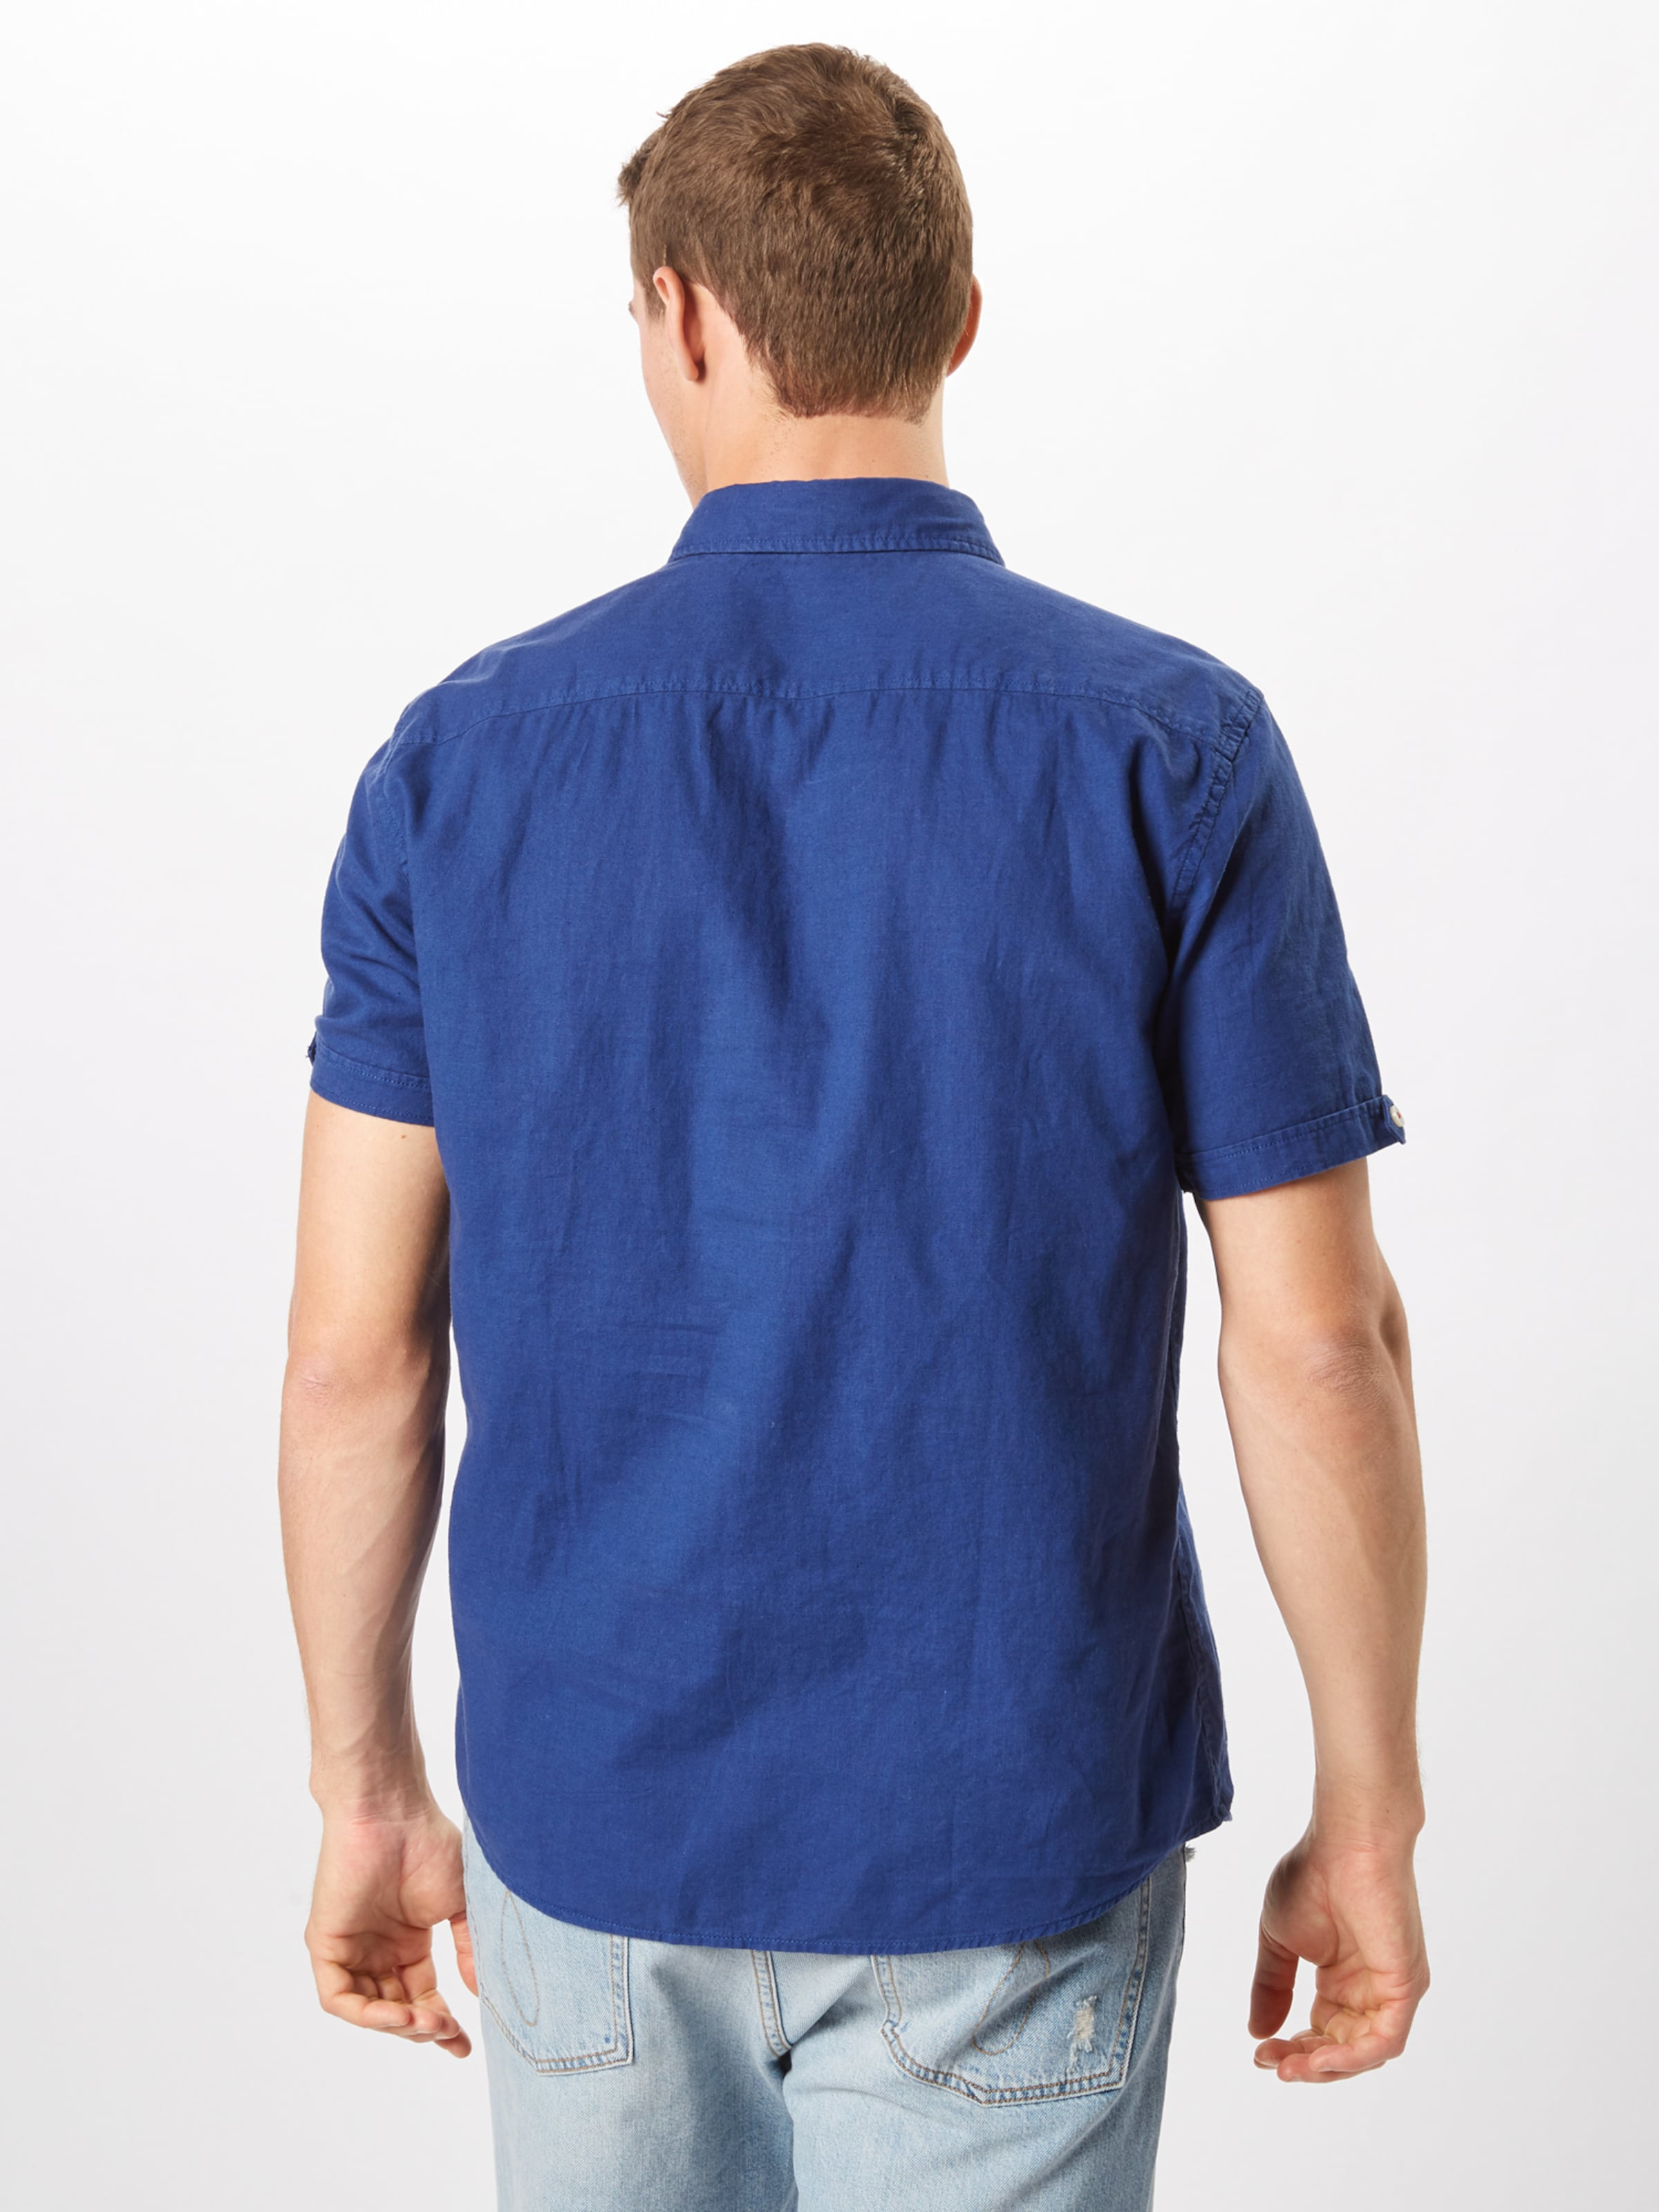 oliver Red Label In Blau S Hemd IYWHD29E